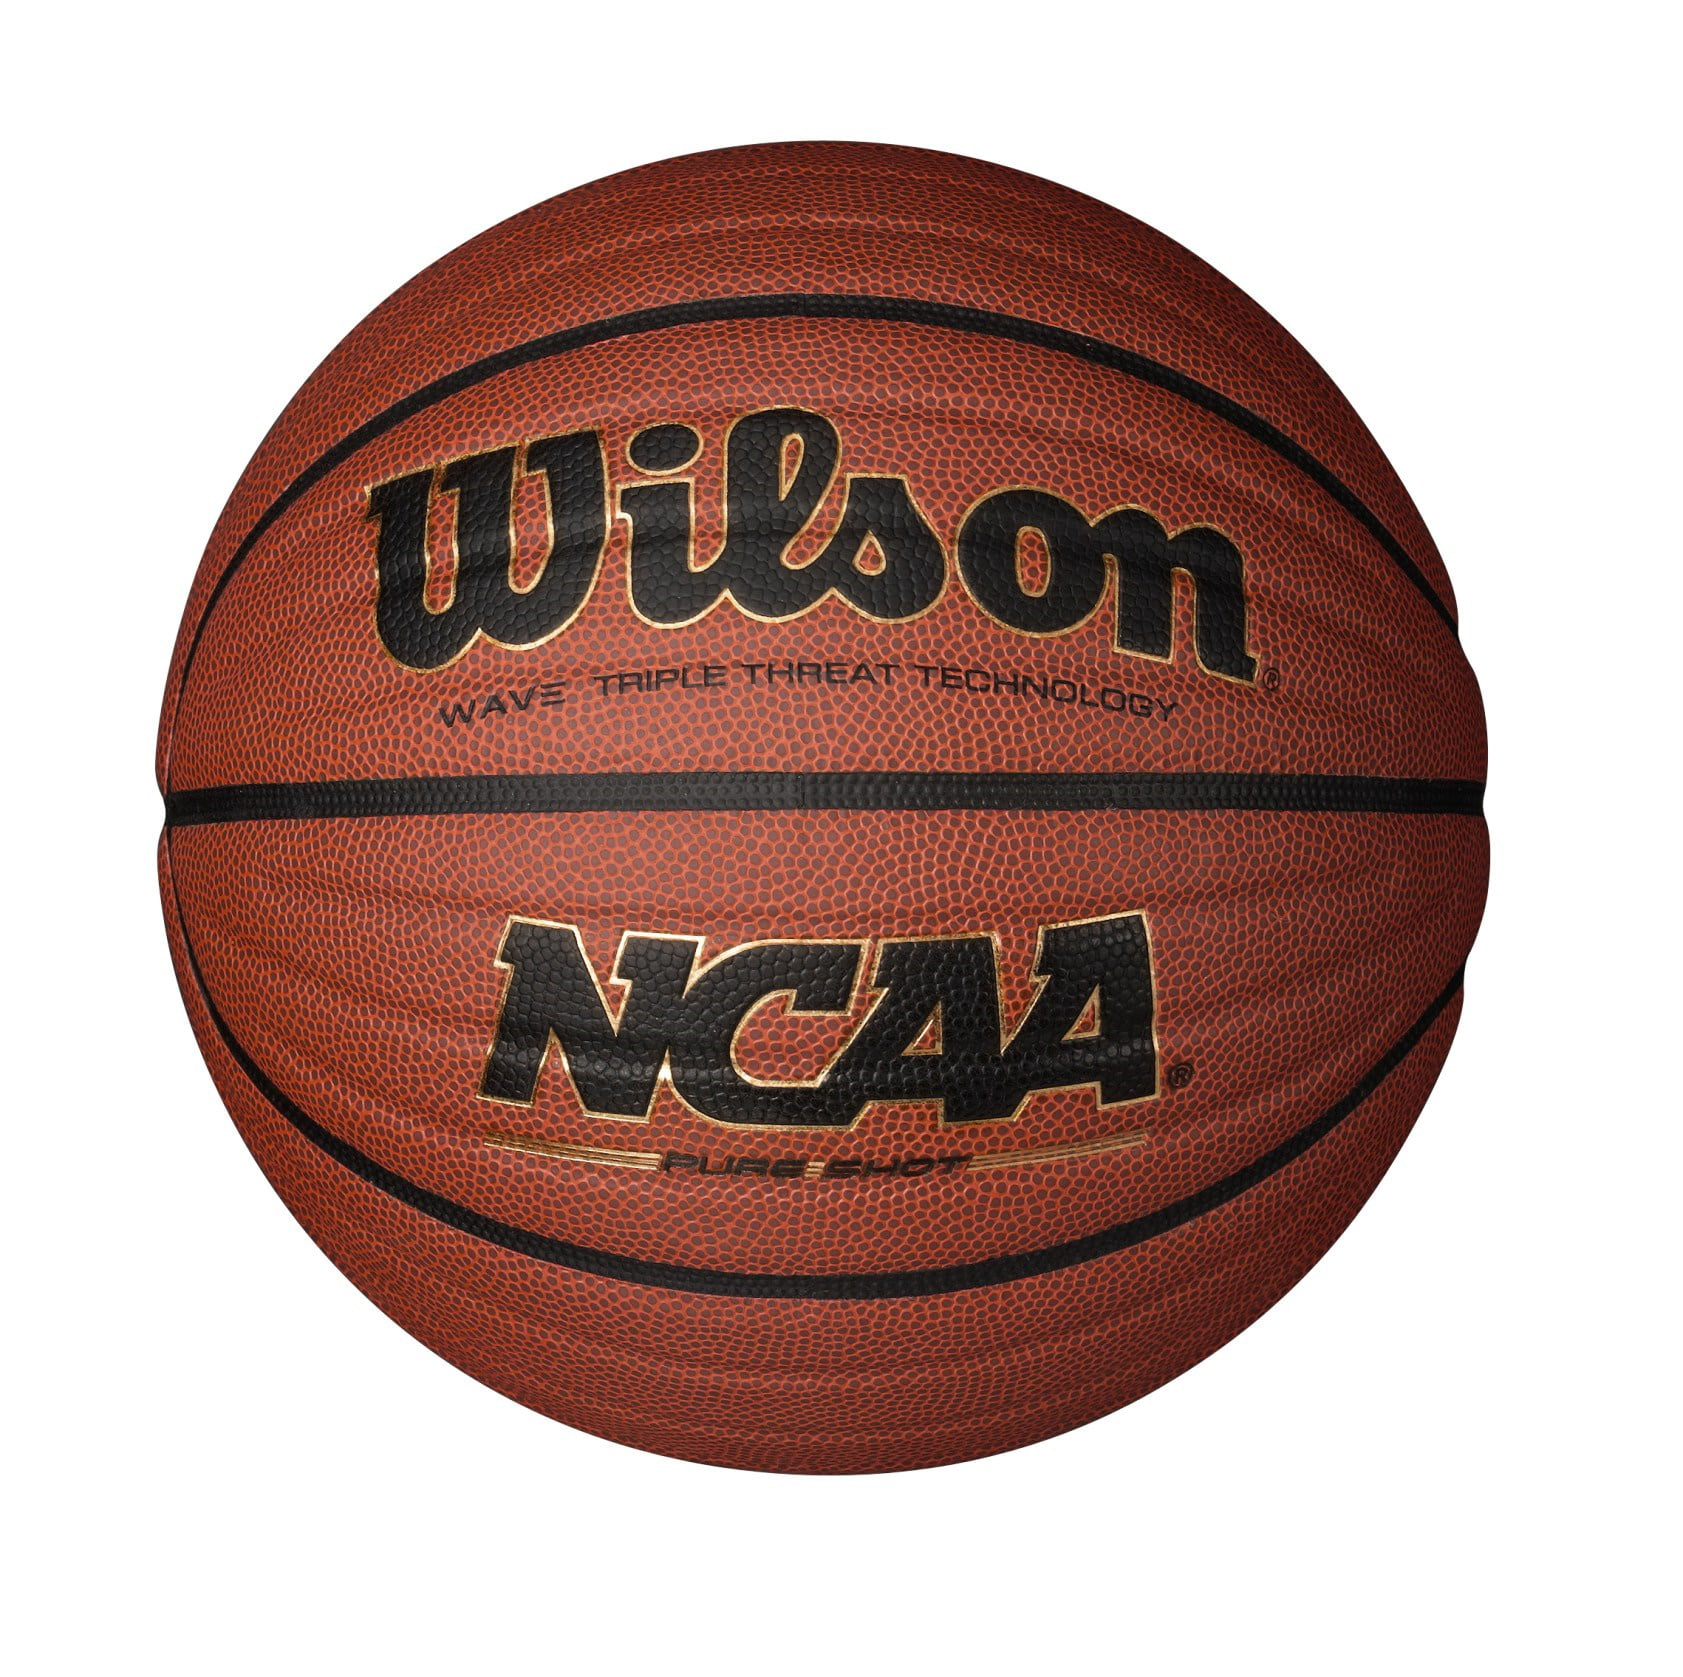 cb9db67ac2a Wilson NCAA Wave Basketball, Official Size (29.5